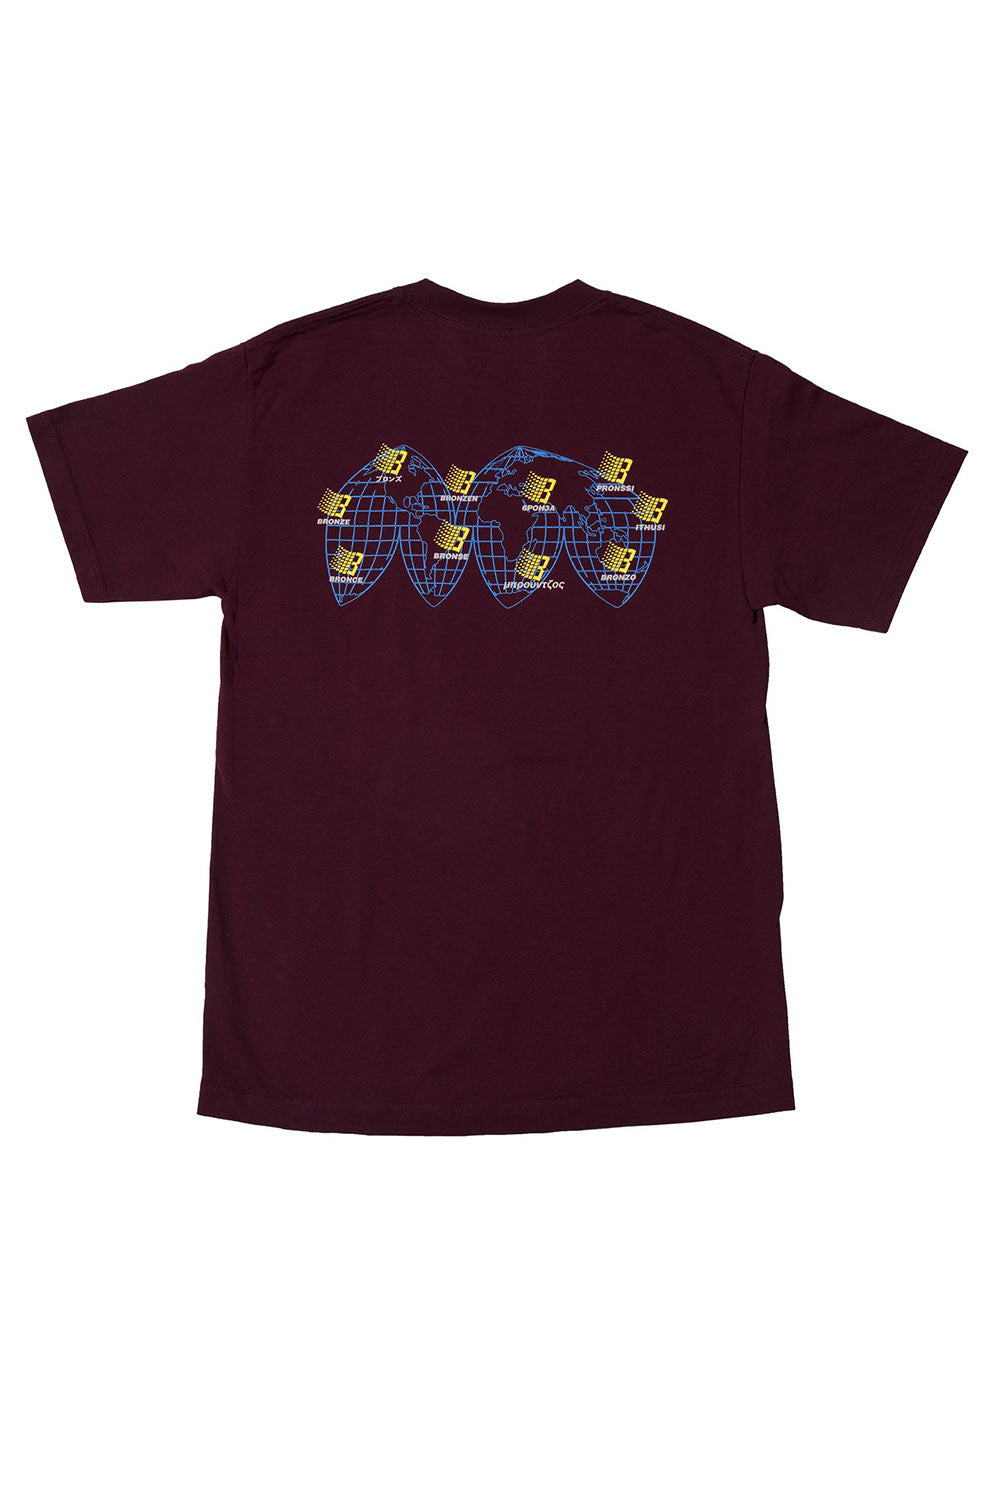 Bronze 56K International T-Shirt - Burgundy